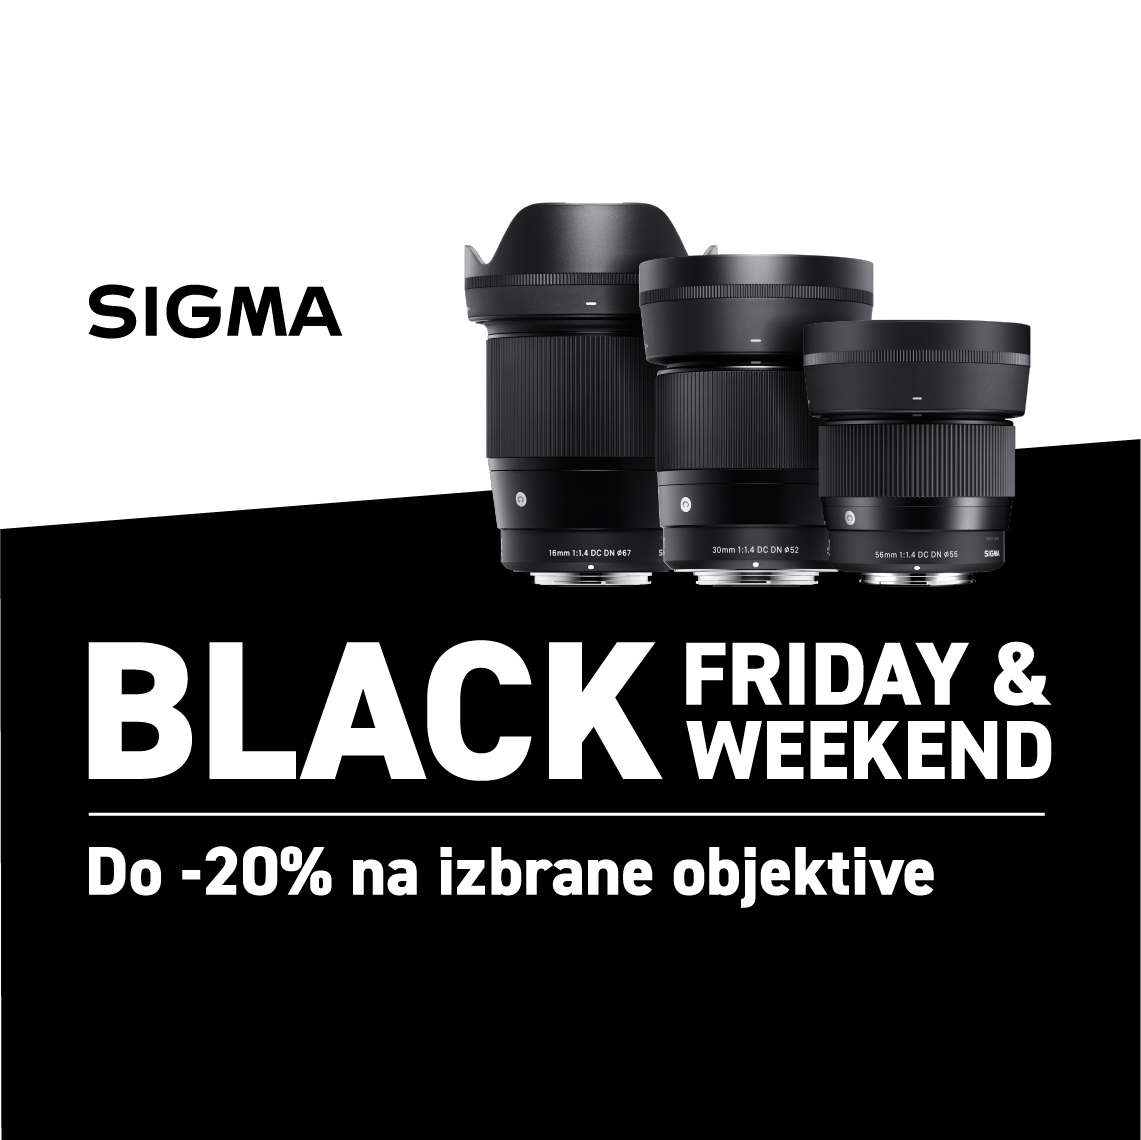 SIGMA Black Friday 2019